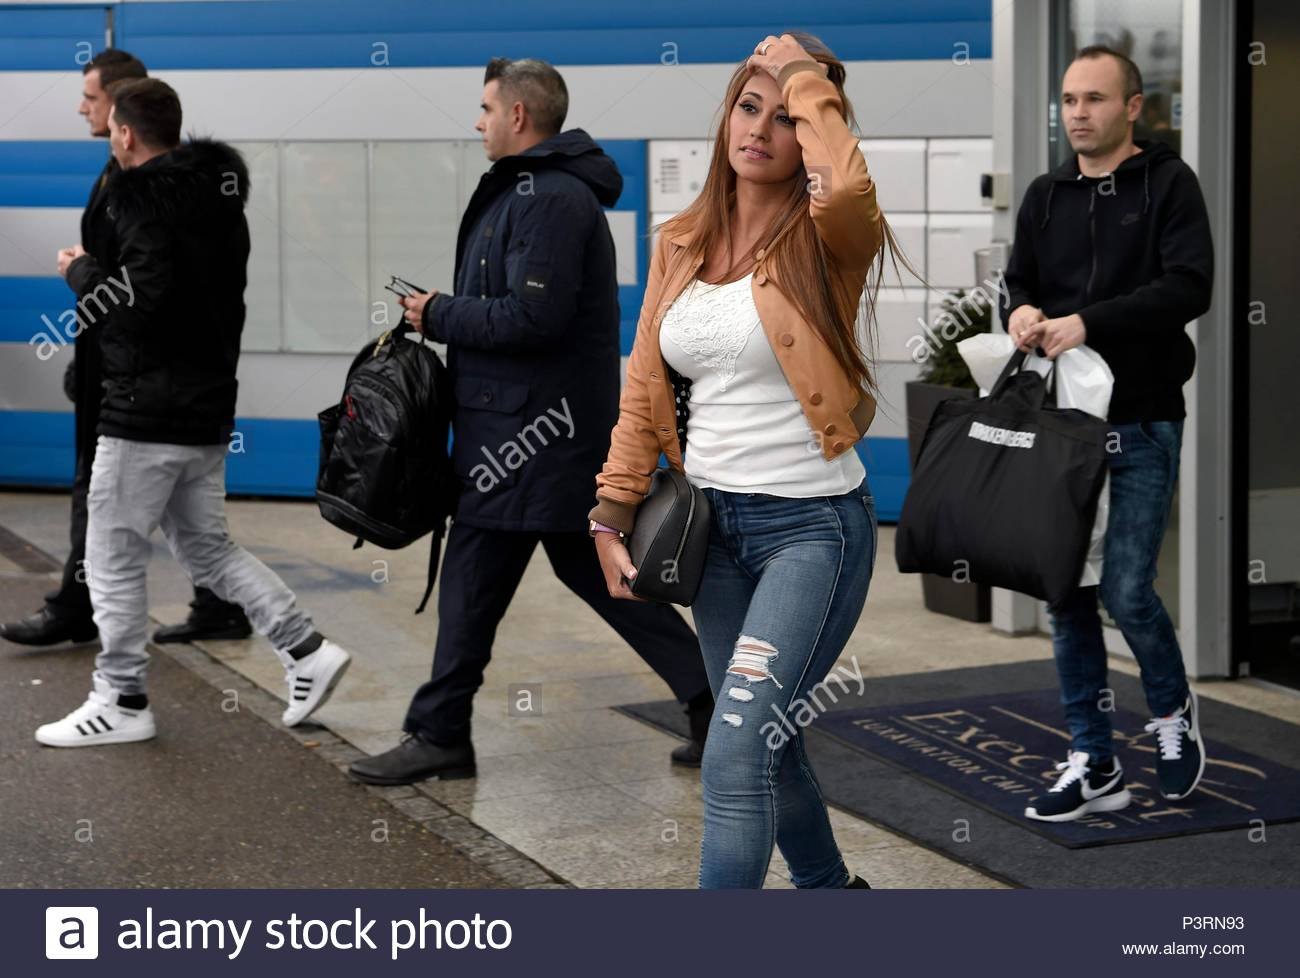 wife of Lionel Messi. 11JAN2016 Soccer stars arriving at Zurich airport for the FIFA Ballon d'Or Gala 2015 at the Kongresshalle in Zurich. - Stock Image